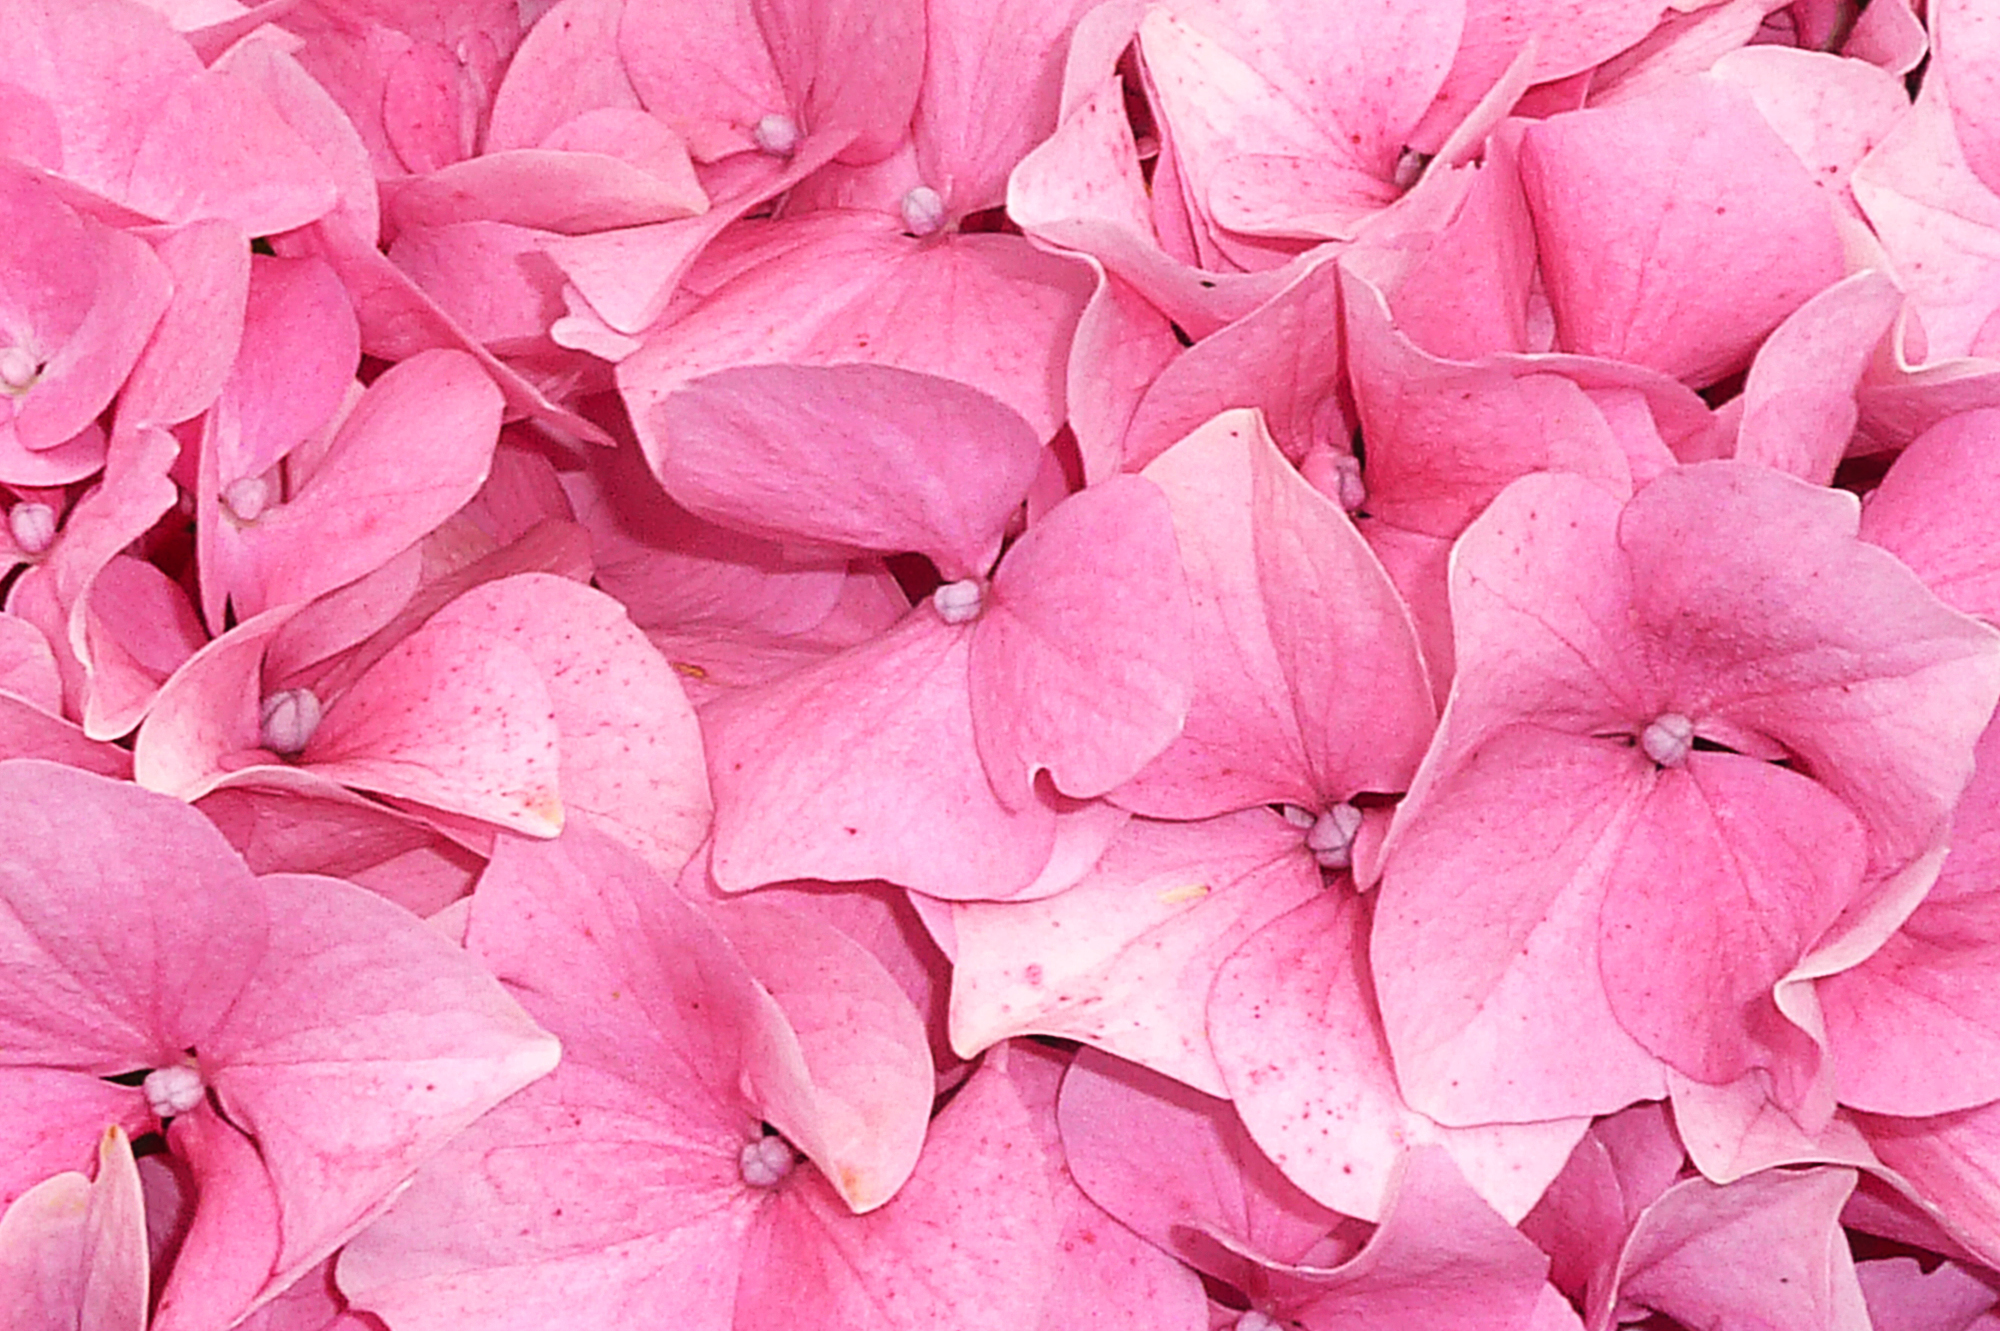 Thirteen Awesome Floral Textures | photoshopworkshop